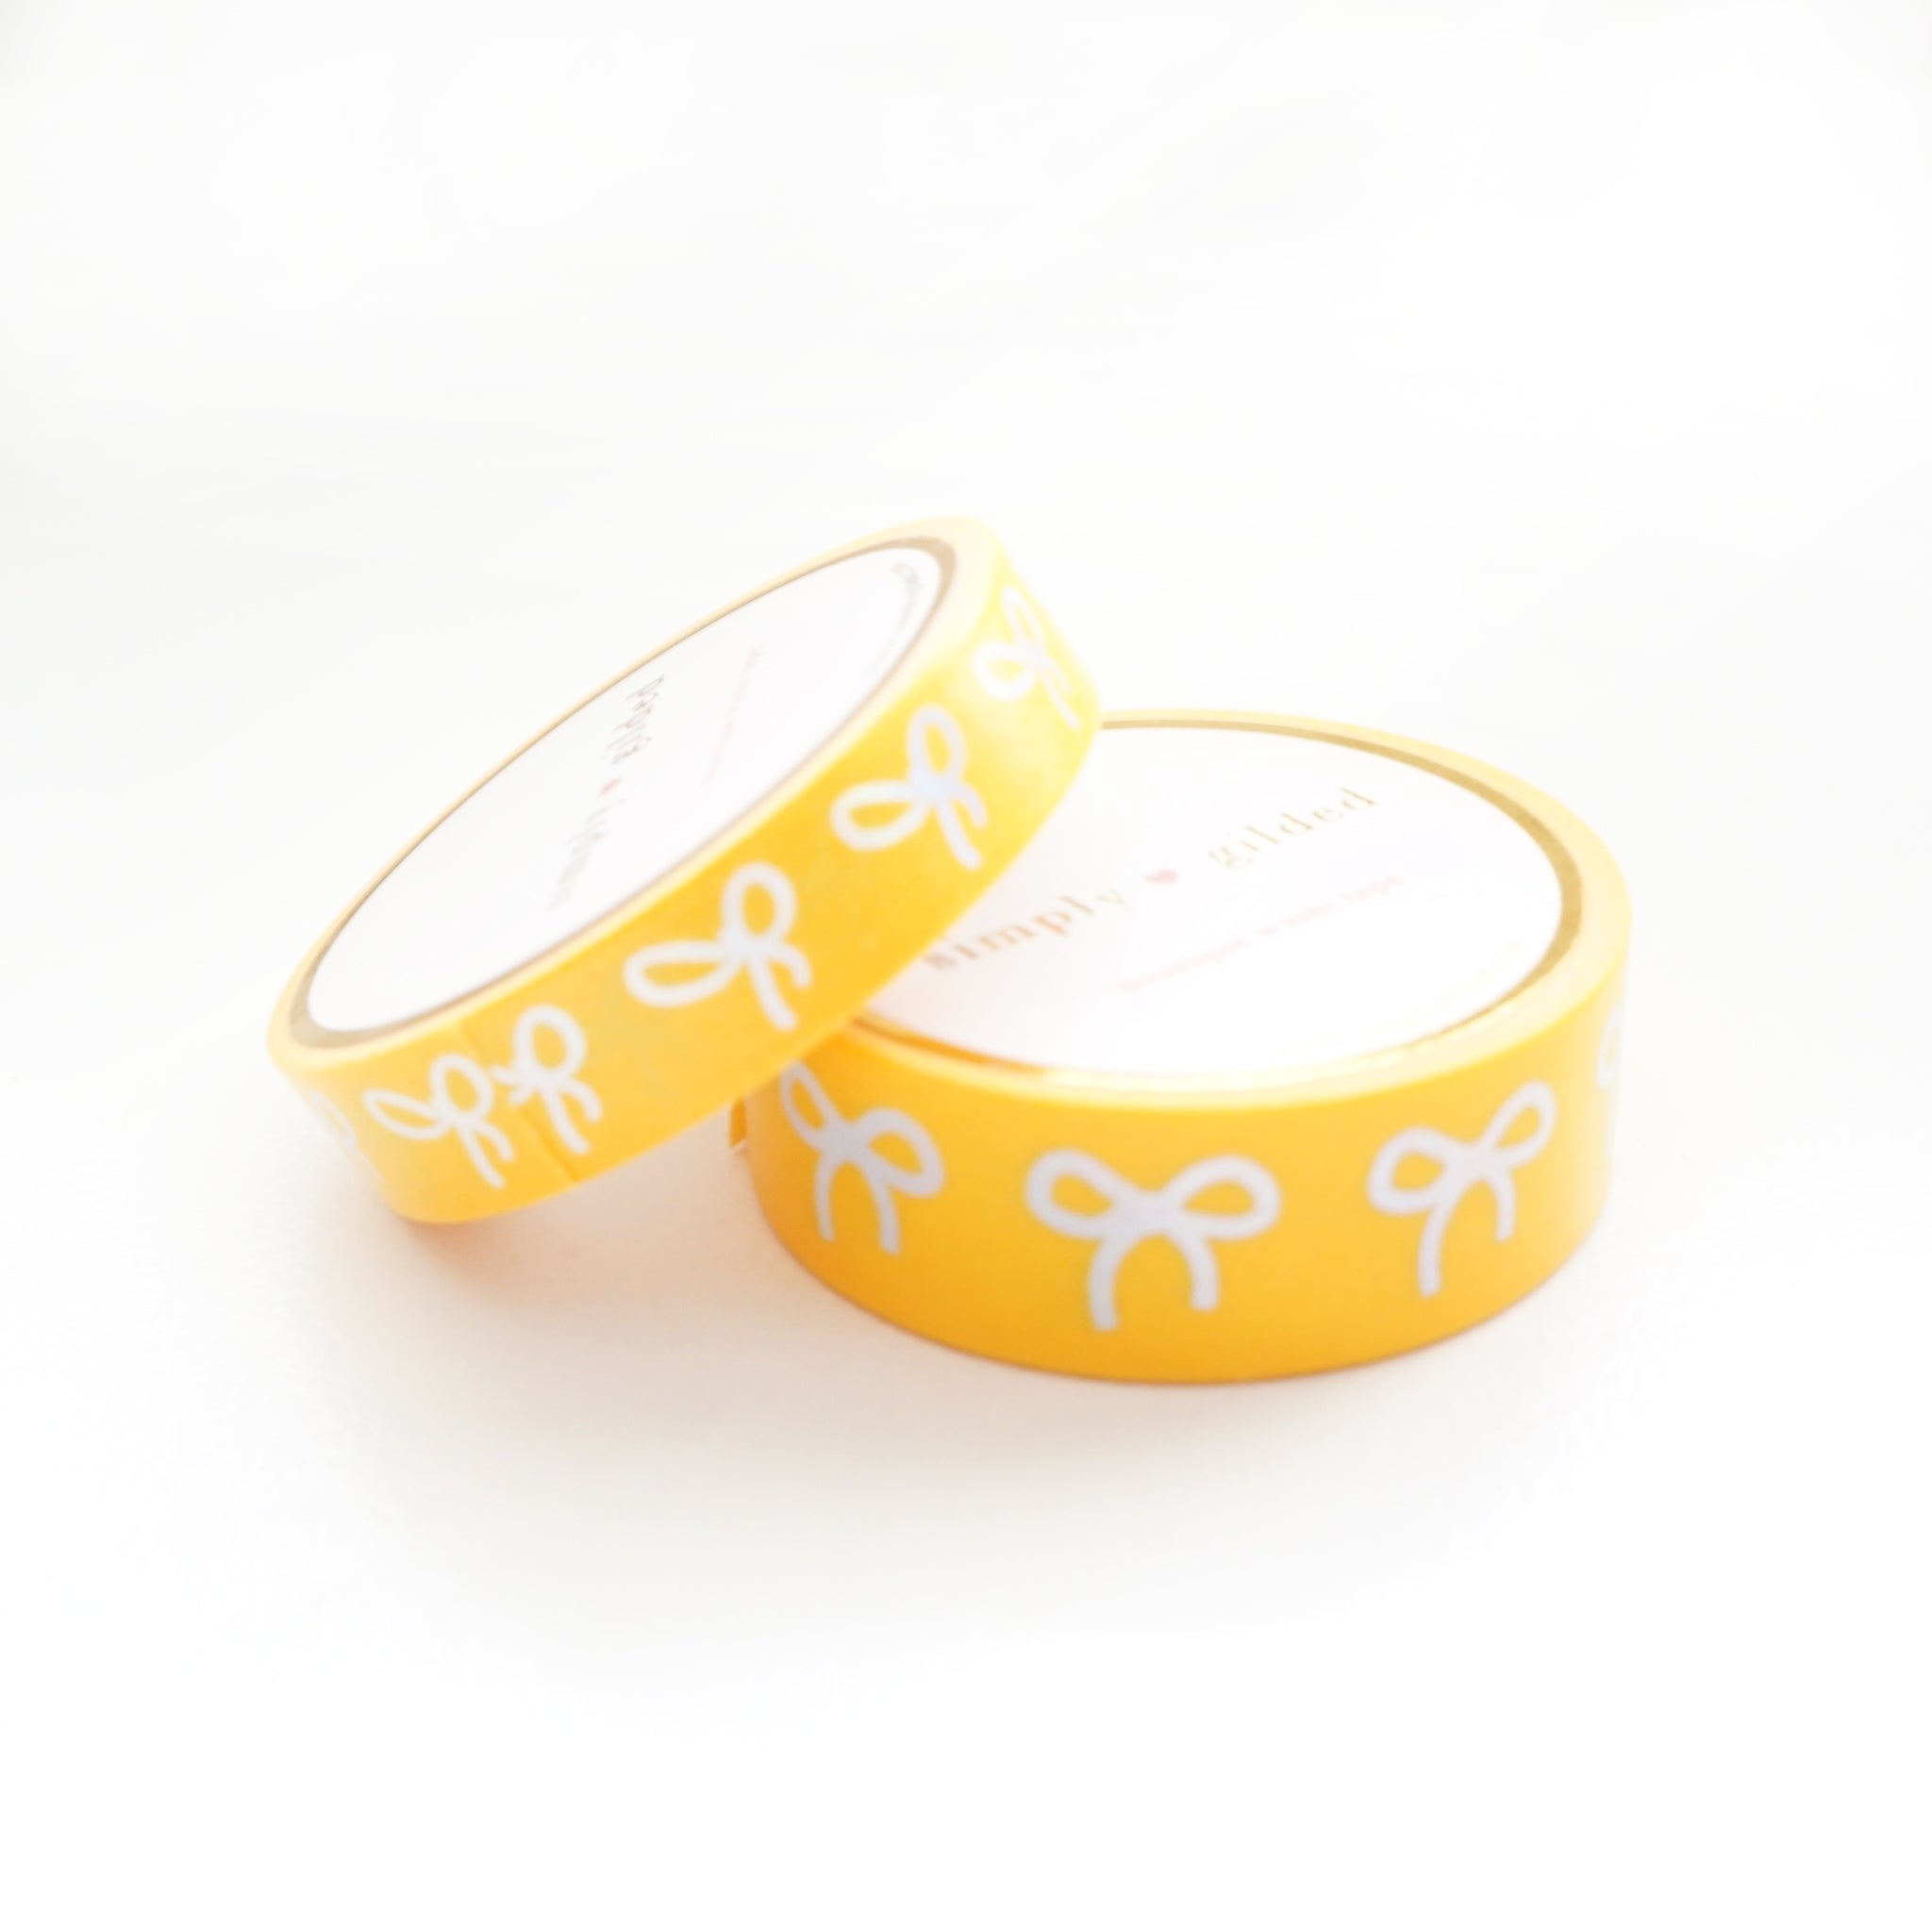 WASHI TAPE 15/10mm BOW set - INTENSE YELLOW + silver holographic (May Release, Presale) LIMIT of 2